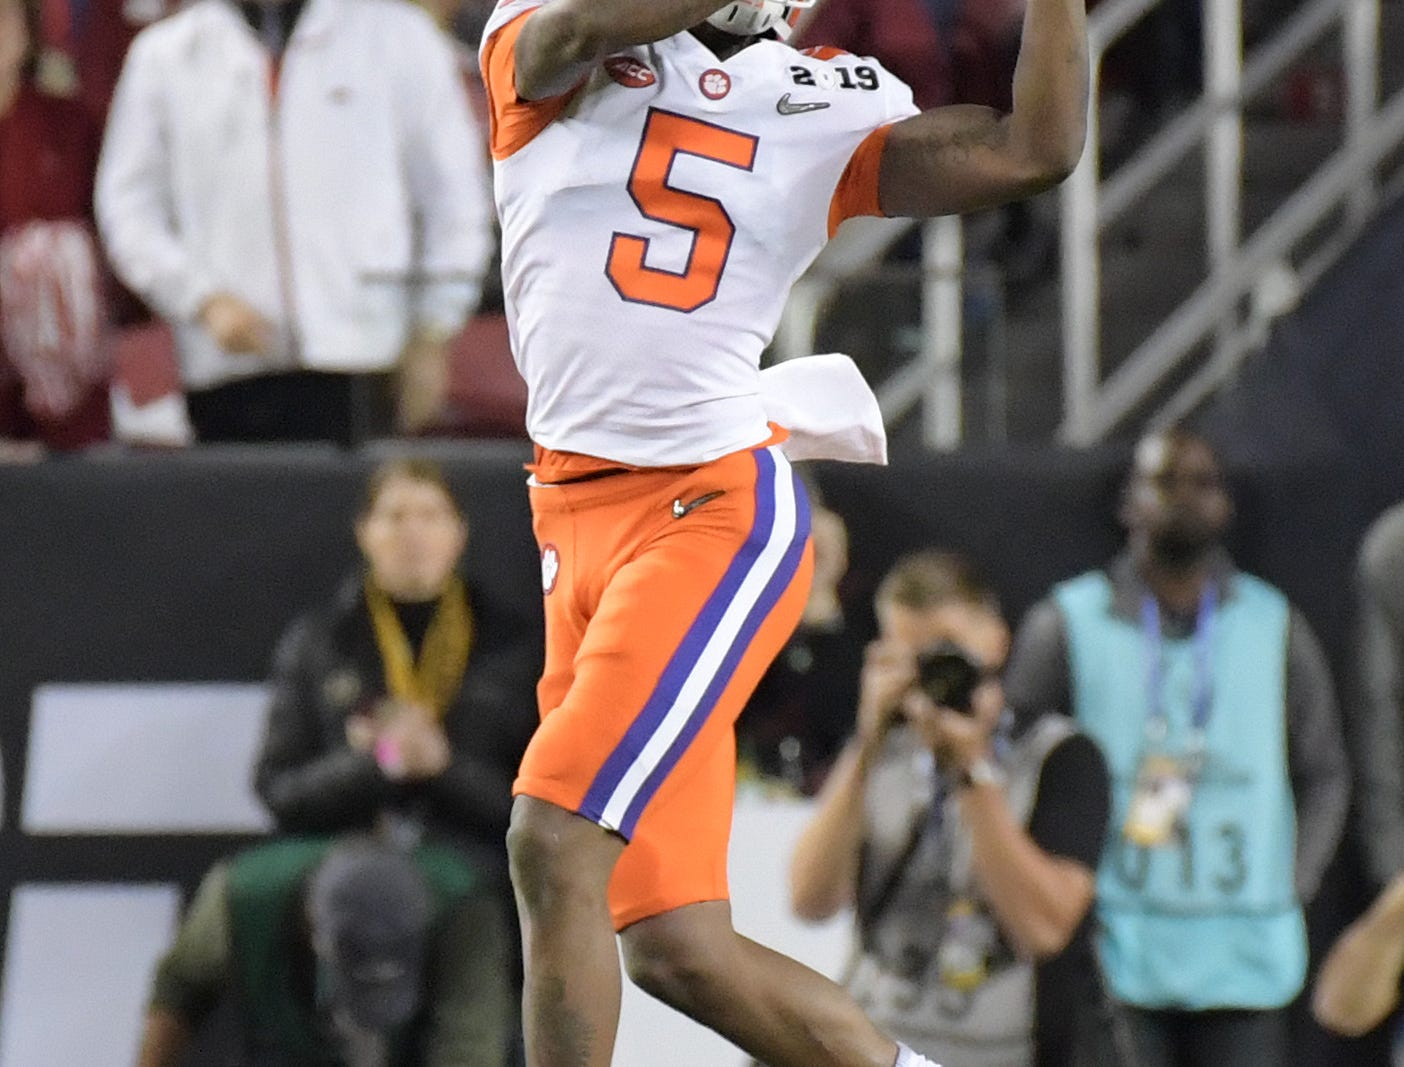 Jan 7, 2019; Santa Clara, CA, USA; Clemson Tigers wide receiver Tee Higgins (5) makes a catch in the second quarter against the Alabama Crimson Tide during the 2019 College Football Playoff Championship game at Levi's Stadium. Mandatory Credit: Kirby Lee-USA TODAY Sports